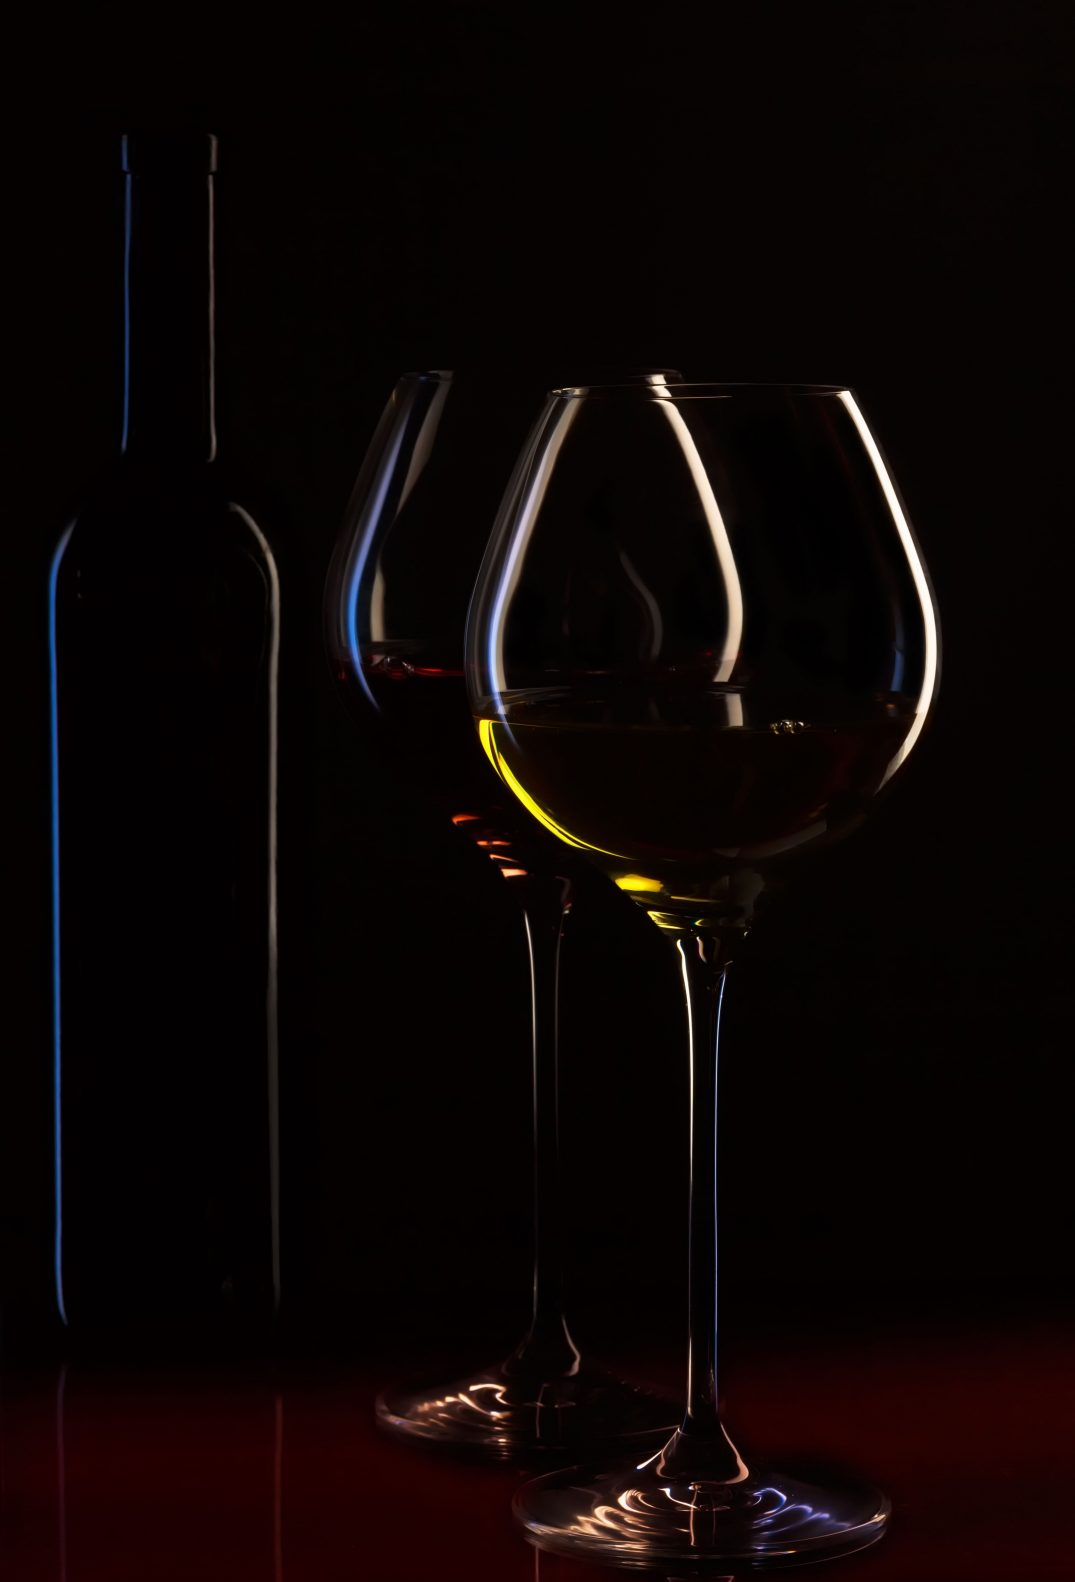 wine-bottle-wine-glasses-wine-ambience